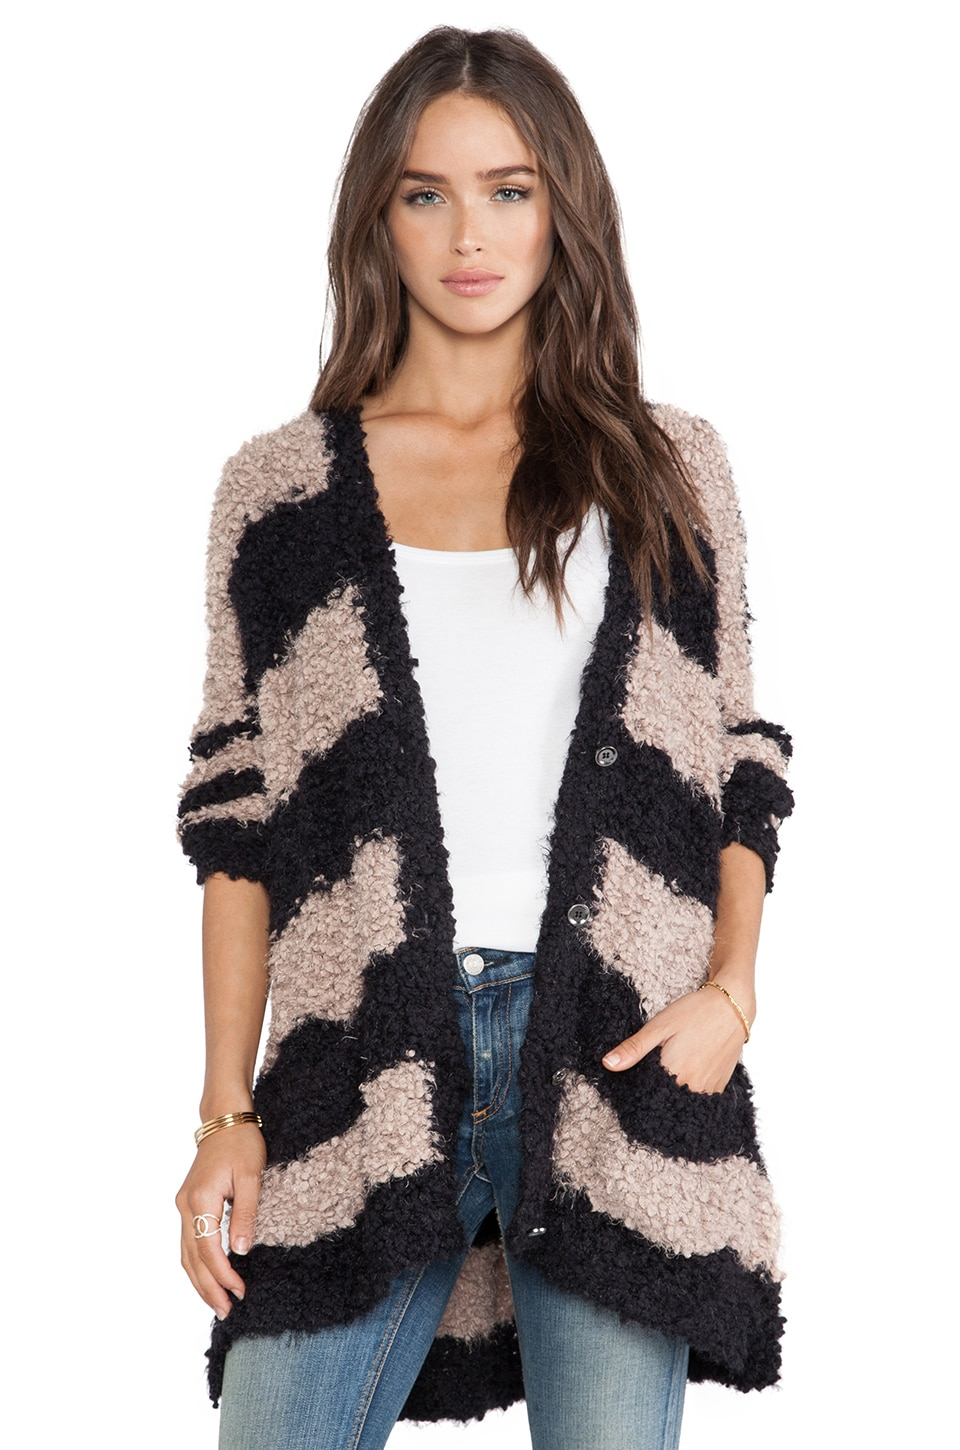 Free People Marshmallow Cardigan in Black & Taupe Combo